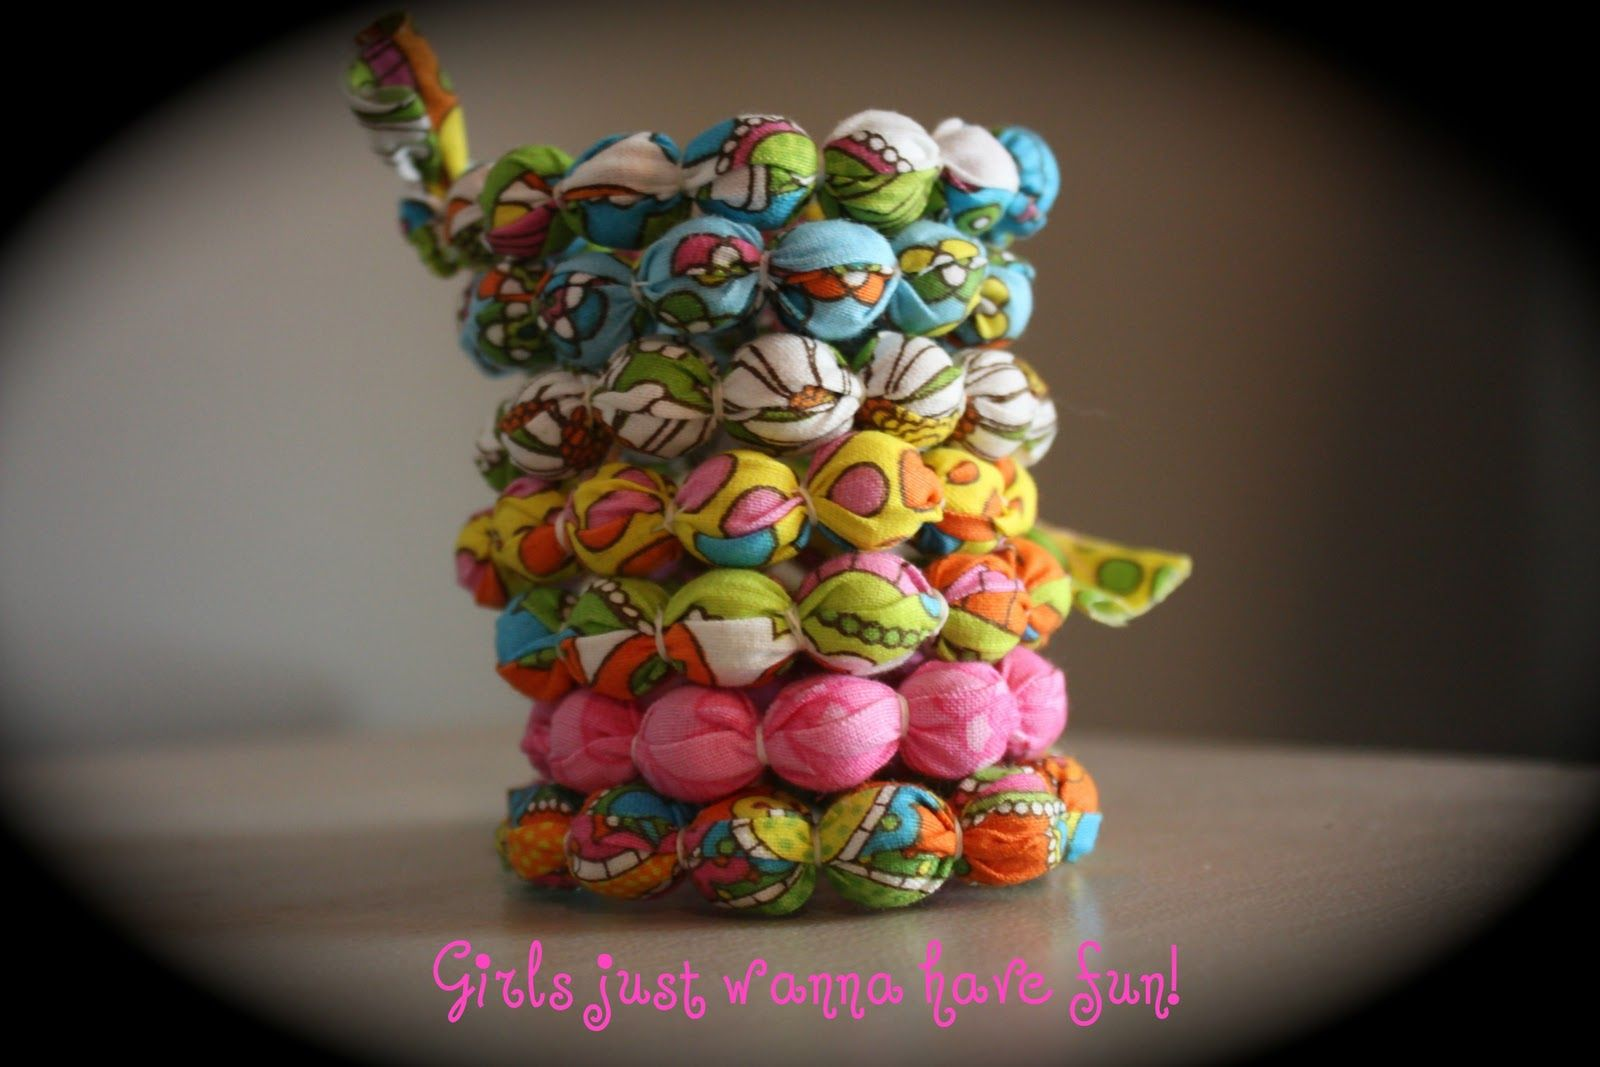 our new line of Girly bracelets!